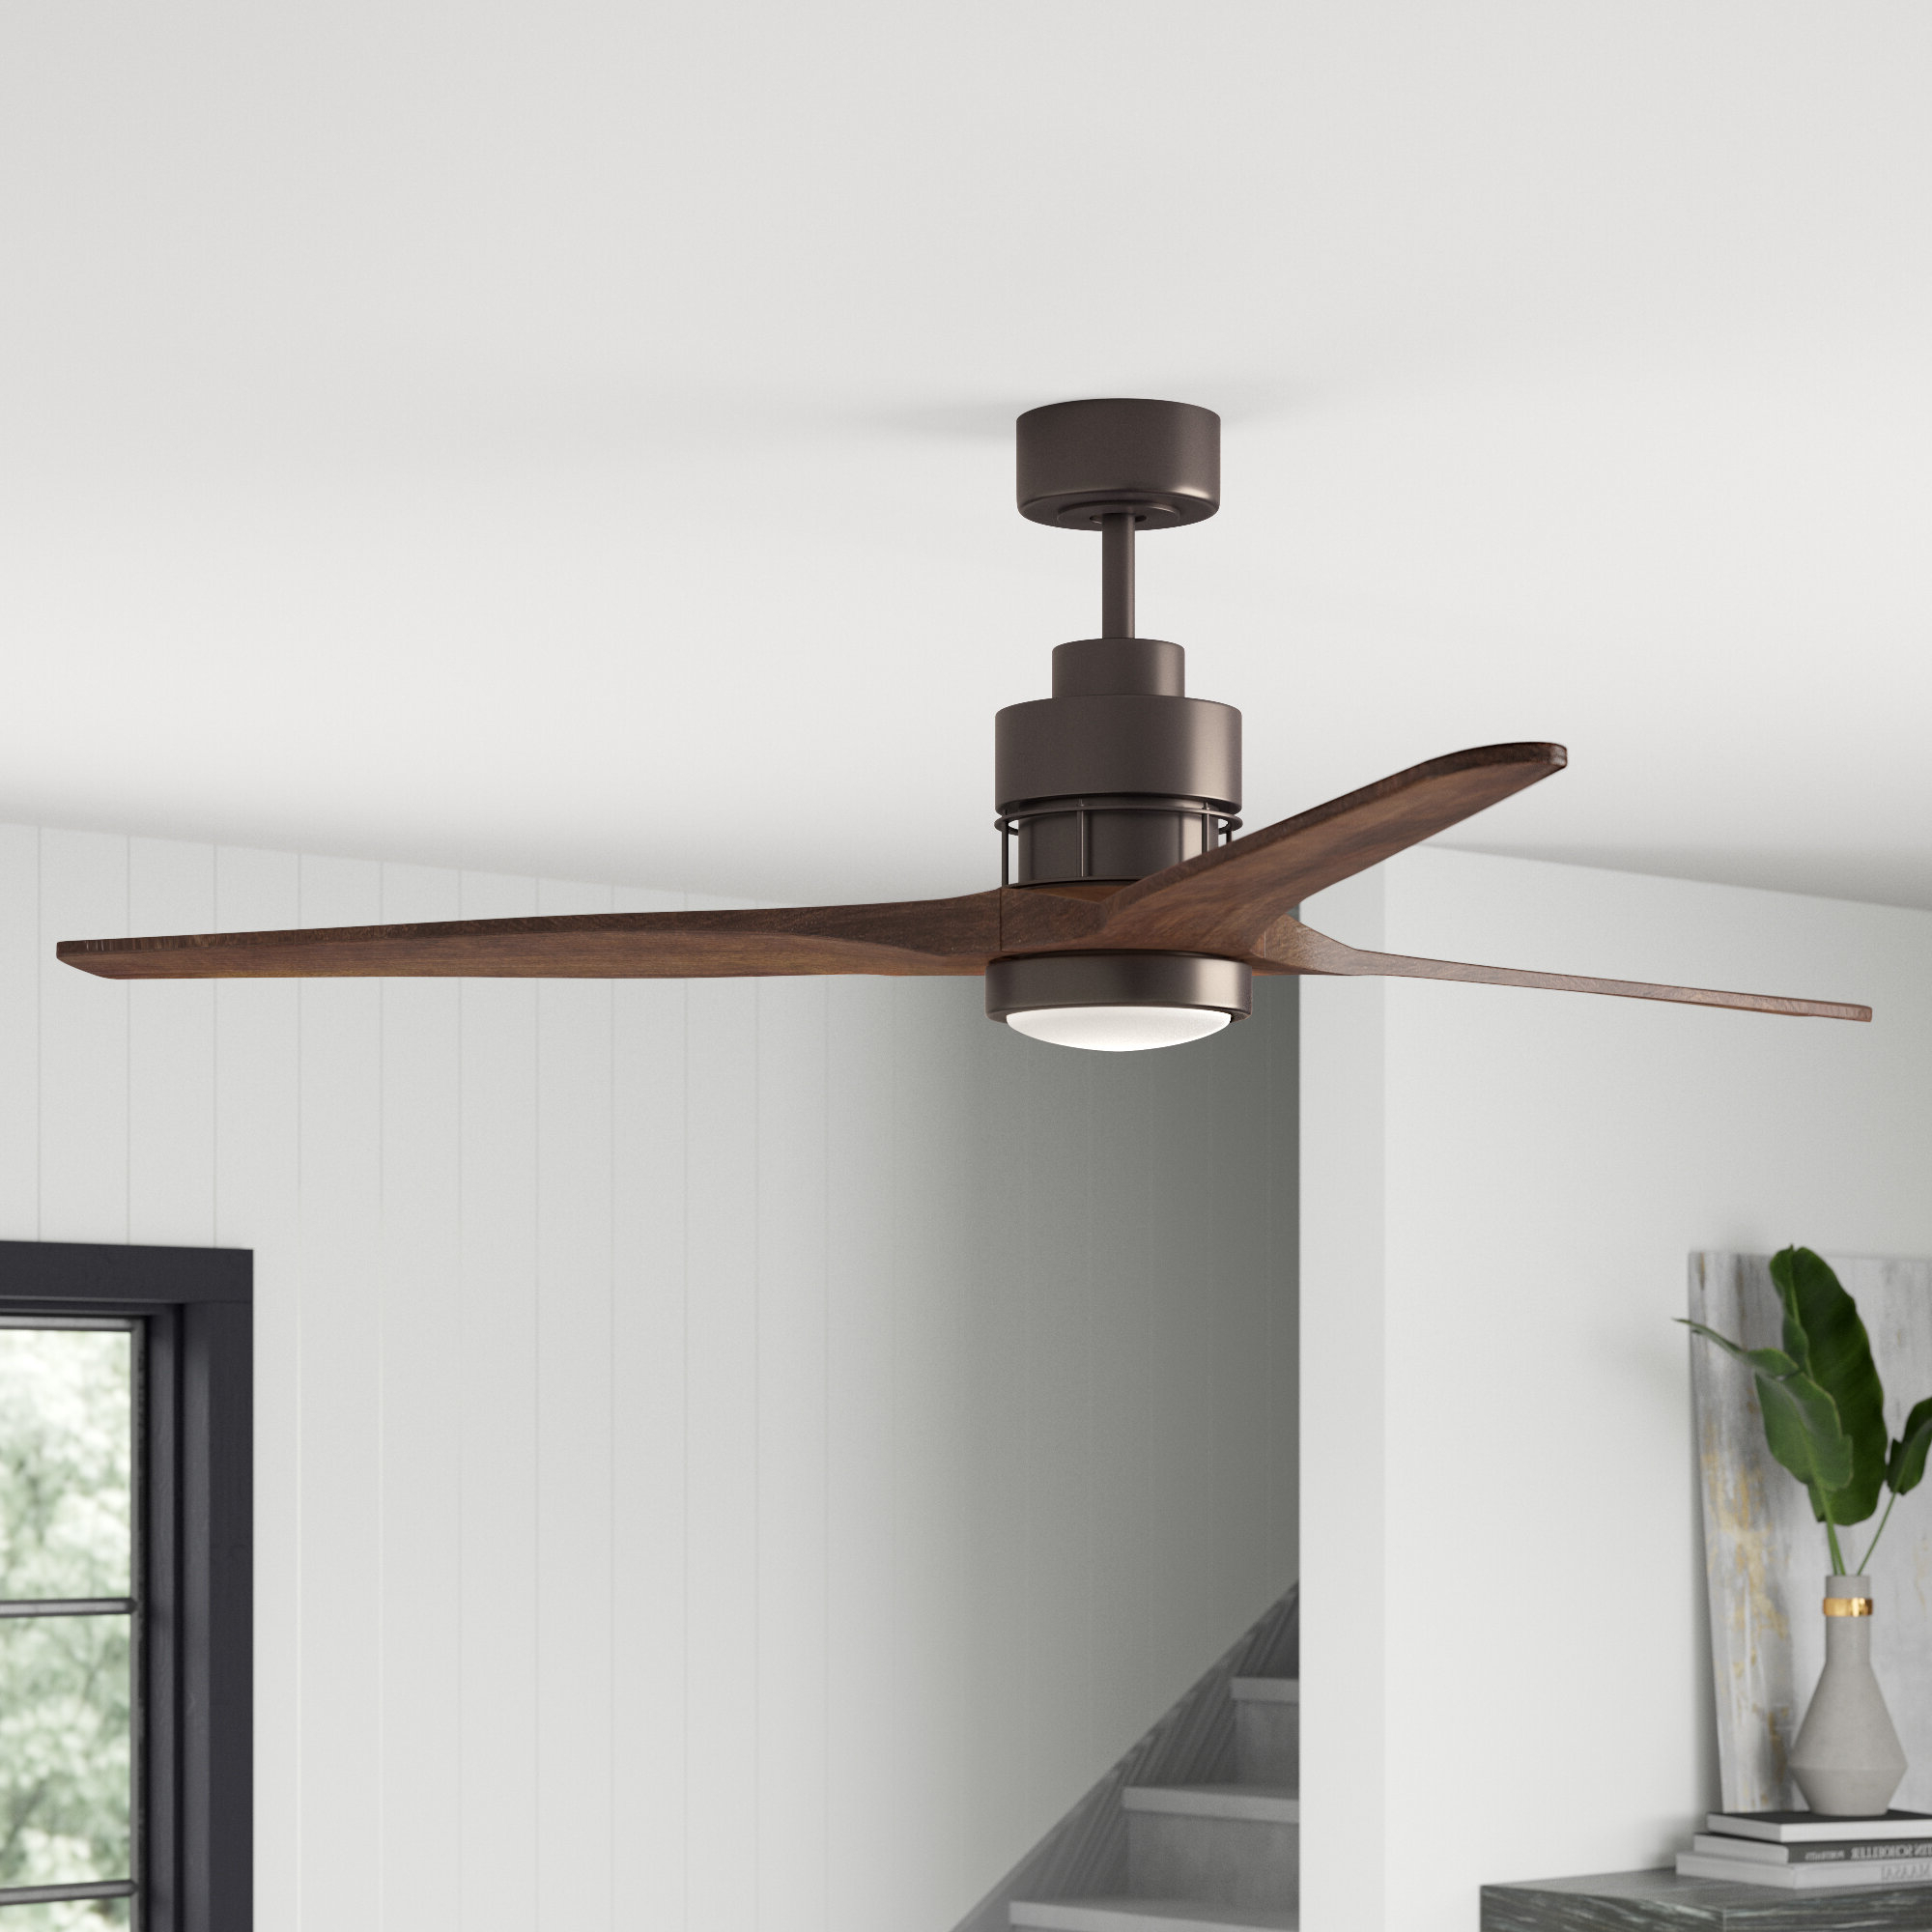 """70"""" Mcdaniels 3 Blade Led Ceiling Fan With Remote, Light Kit Included Inside Most Popular Corsa 3 Blade Ceiling Fans (View 7 of 20)"""